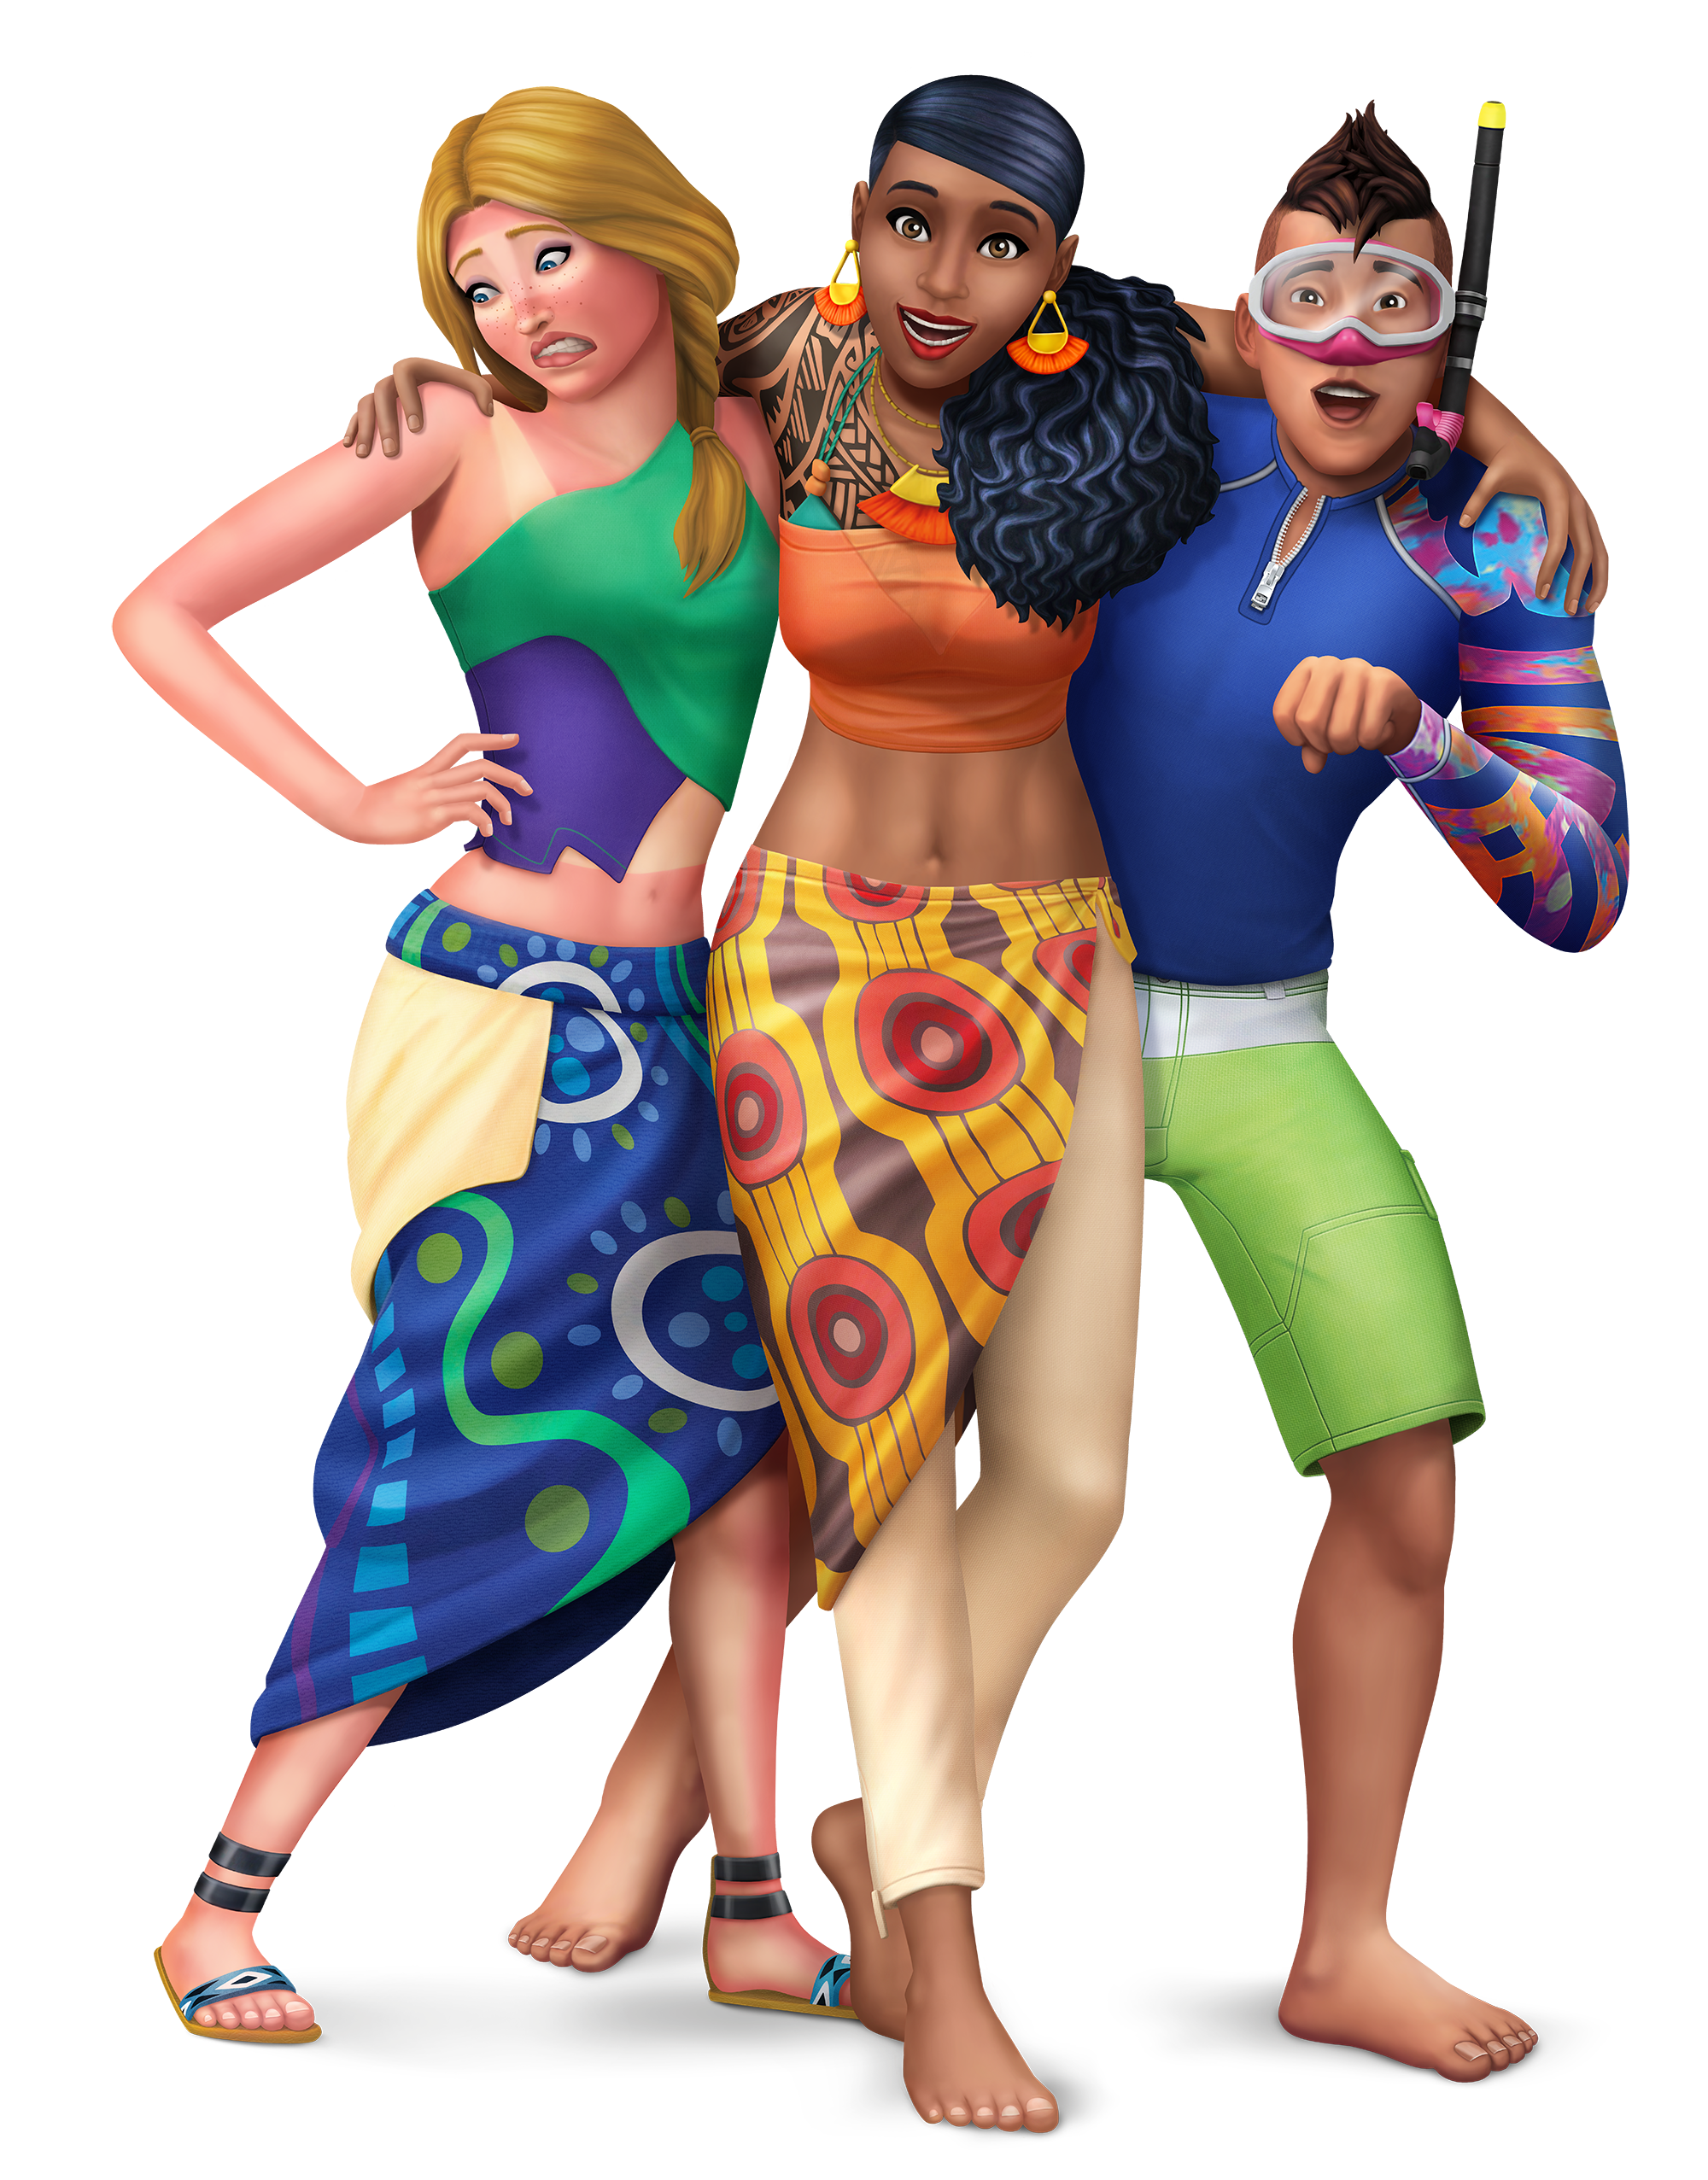 The Sims 4 Island Living: Official Logo, Box Art, Icon And